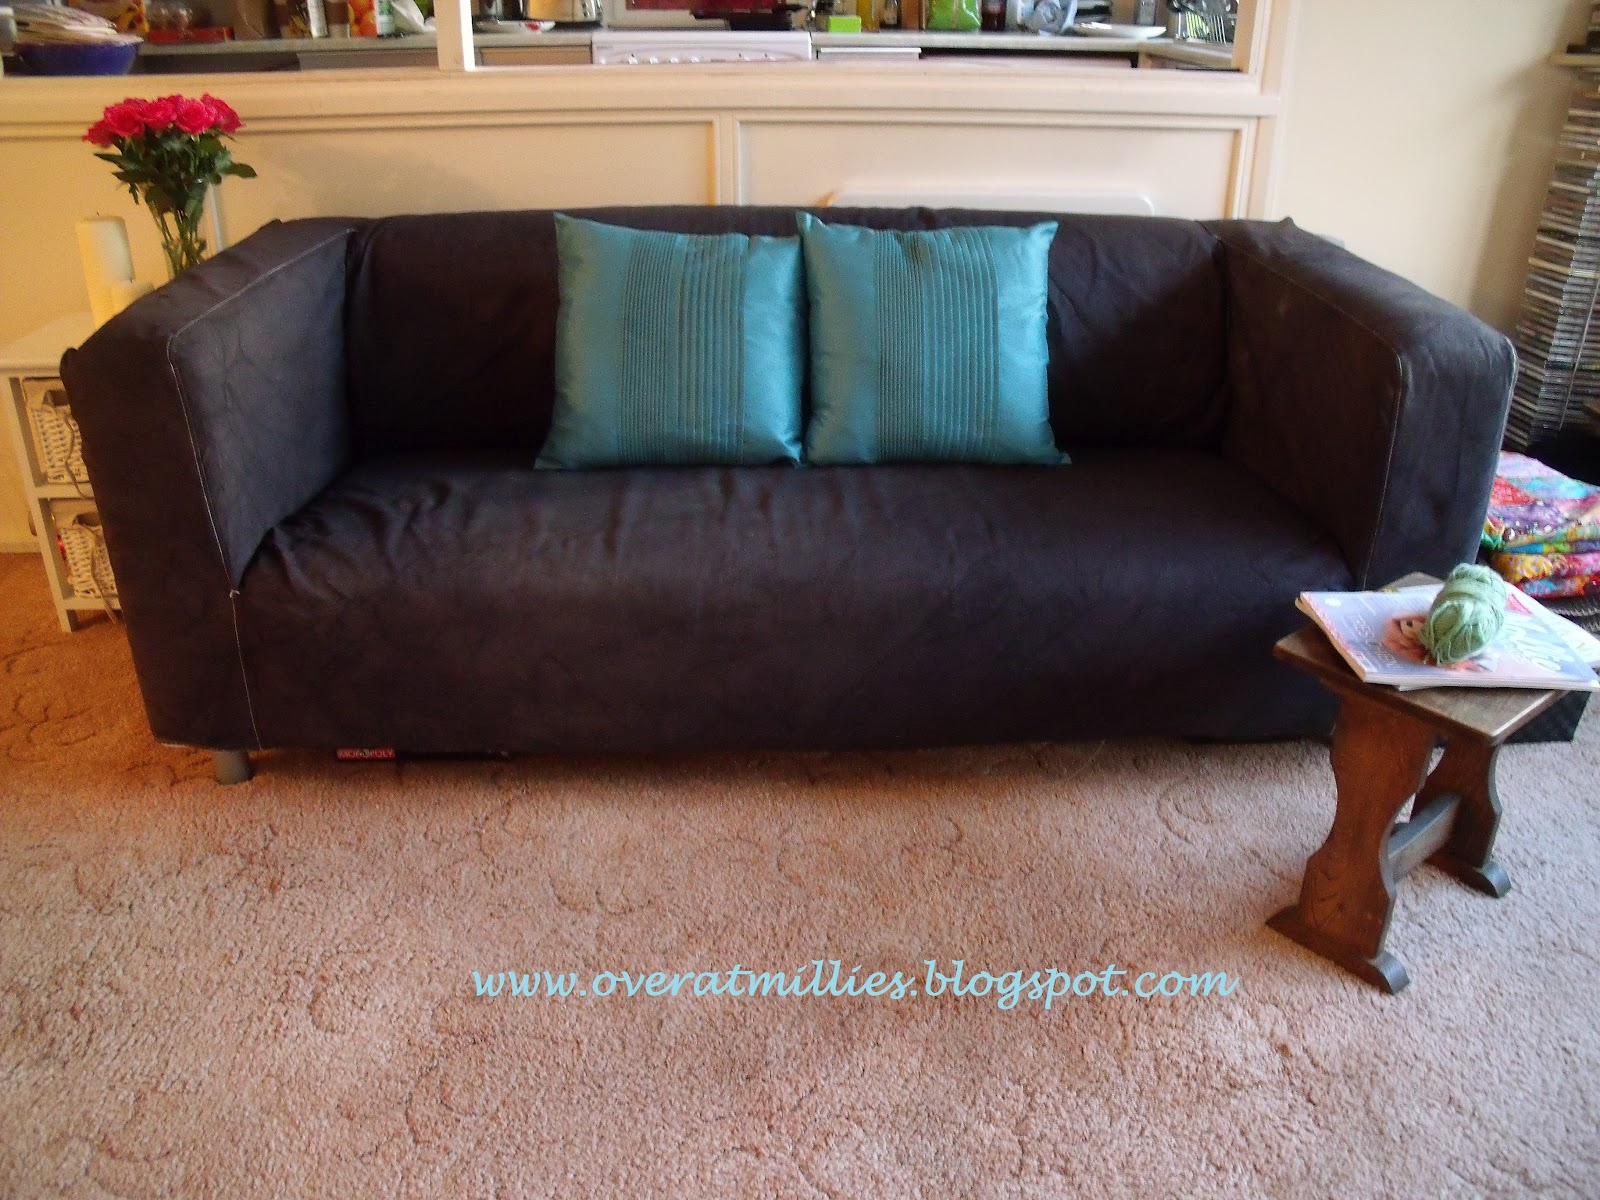 Over At Millie S How To Dye A Klippan Sofa Cover Without Failing Miserably